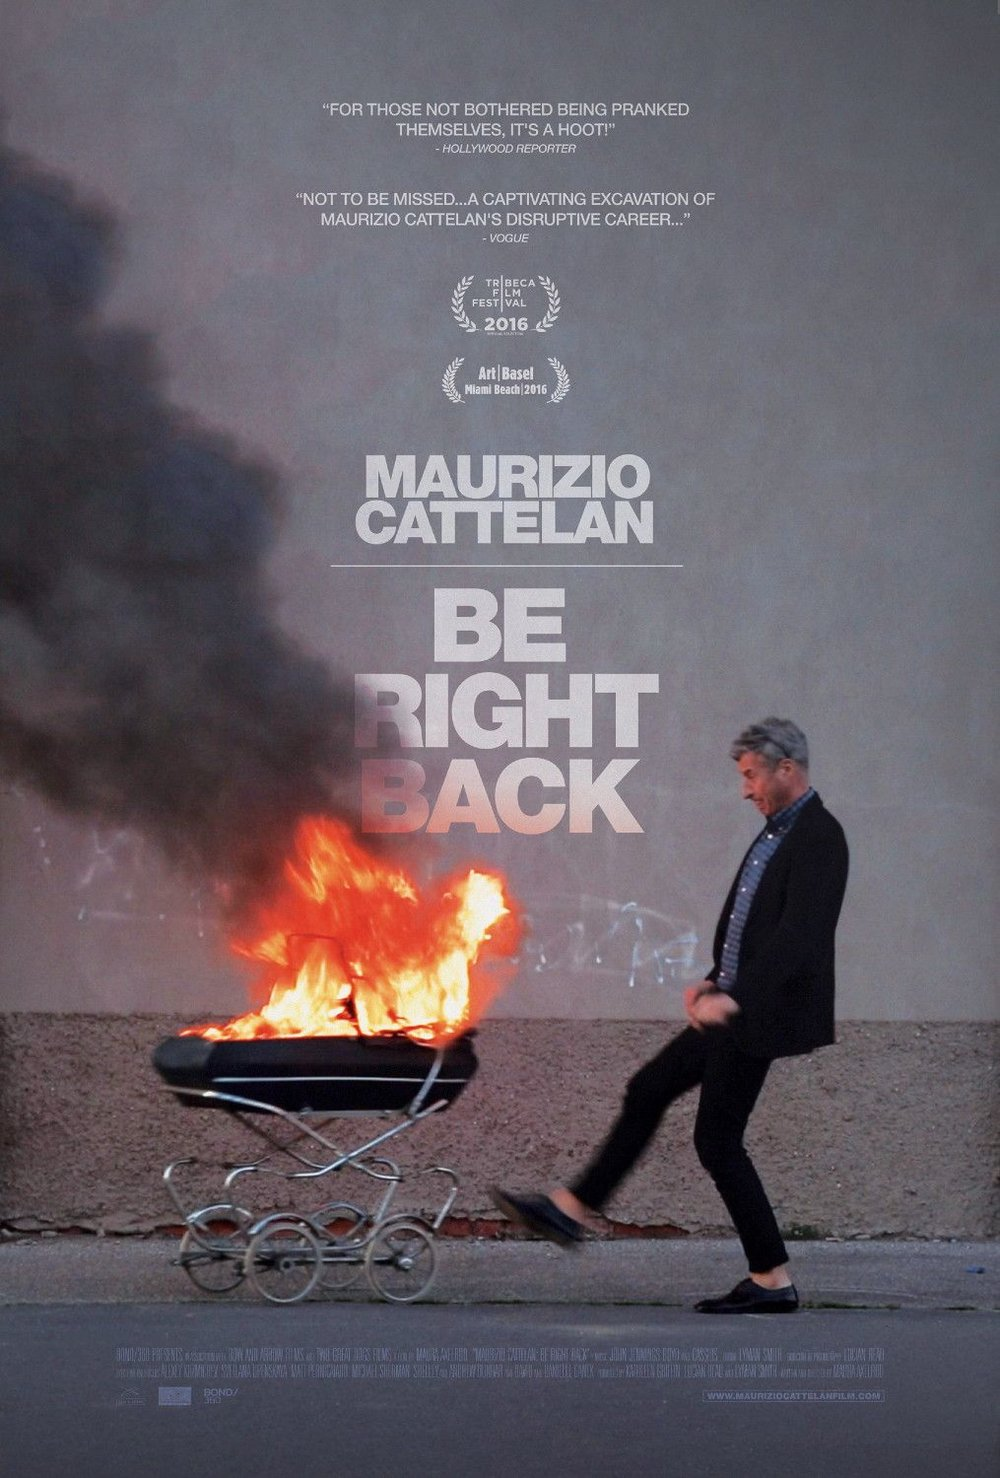 MaurizioCattelan Be Right Back poster.jpg